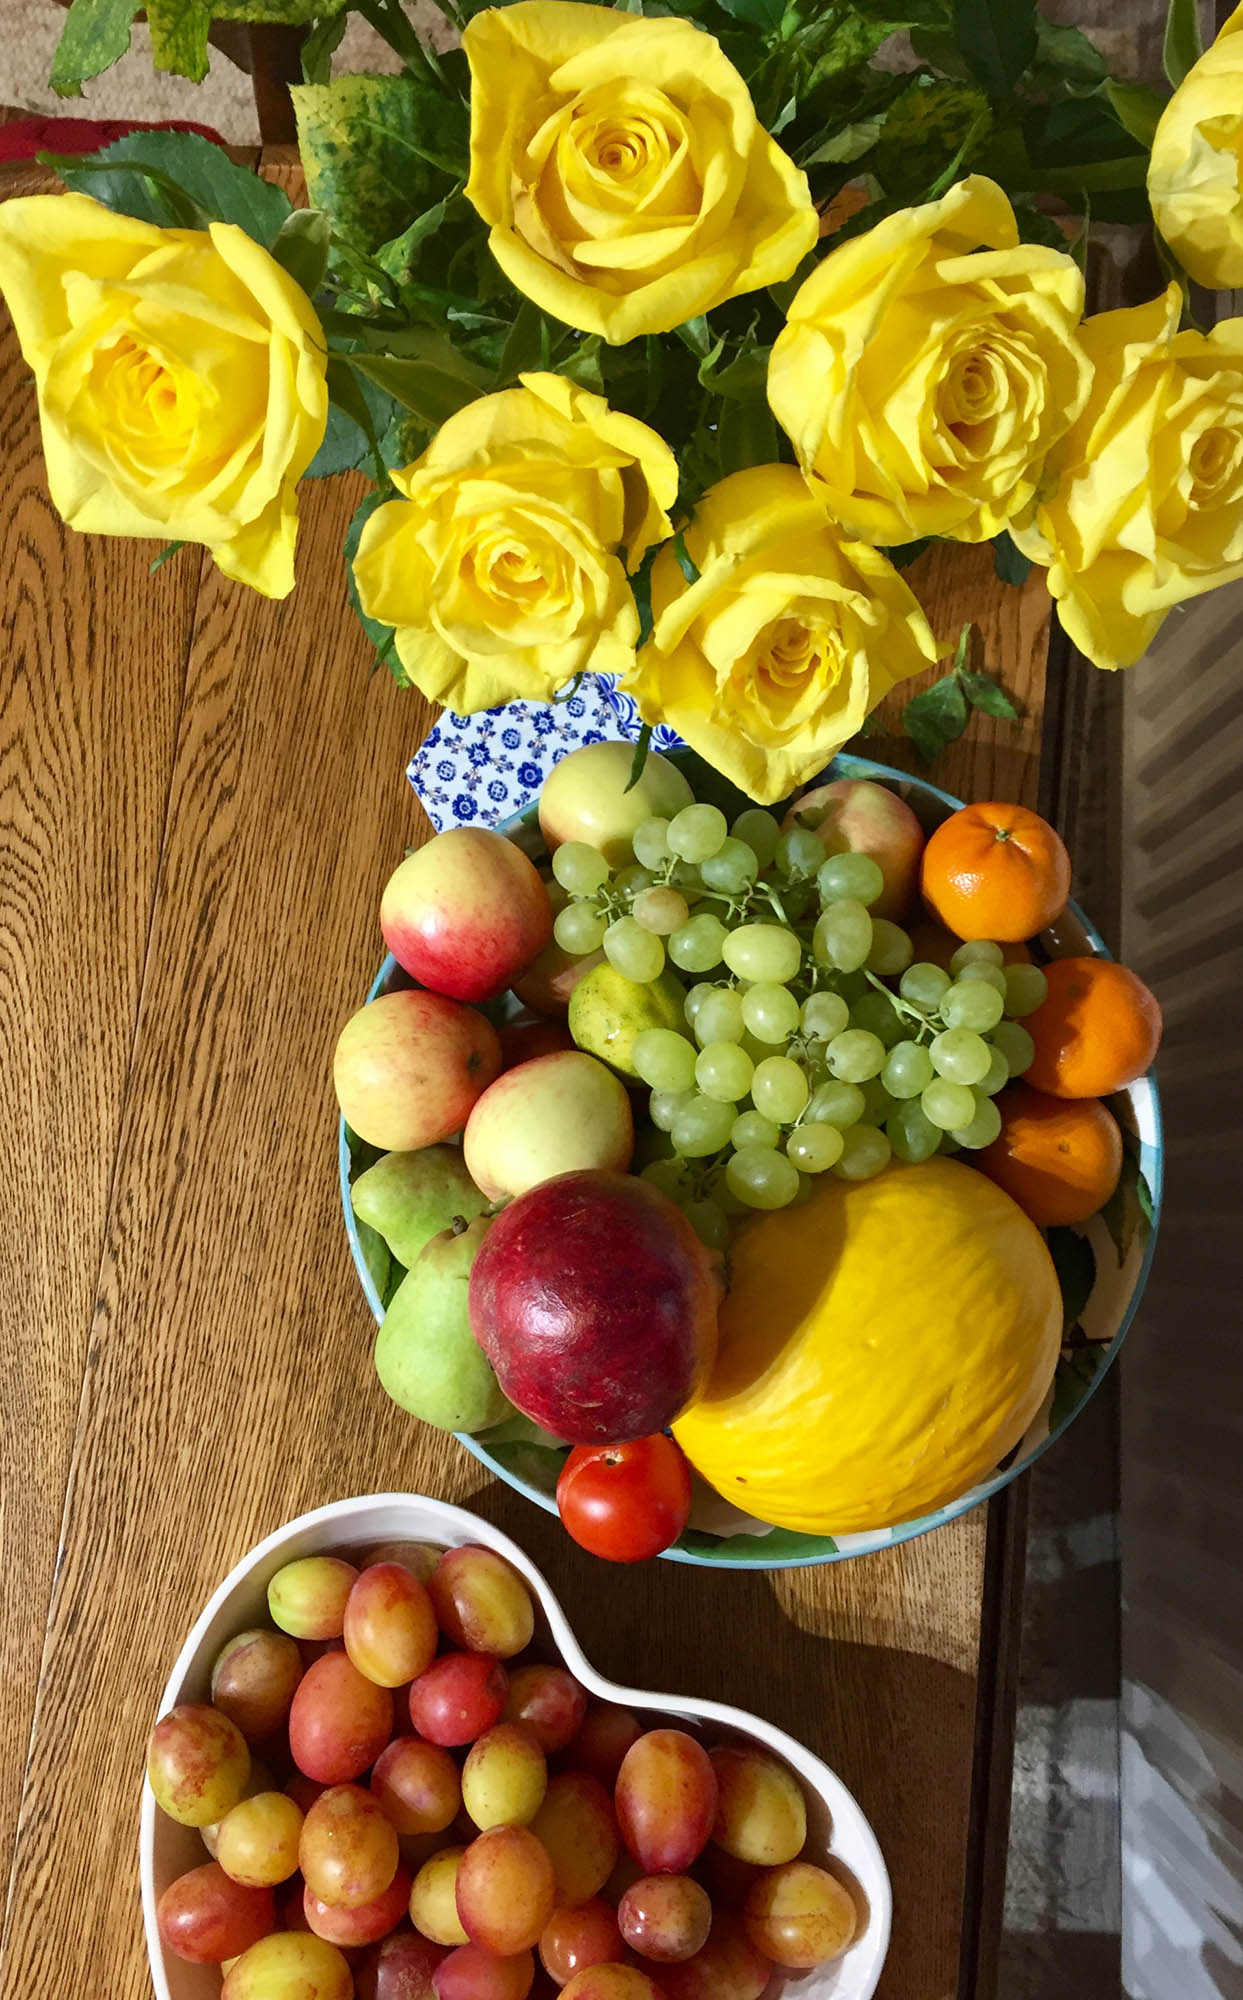 Thoughts on first 2 weeks of dieting - slimming world - fruit bowl